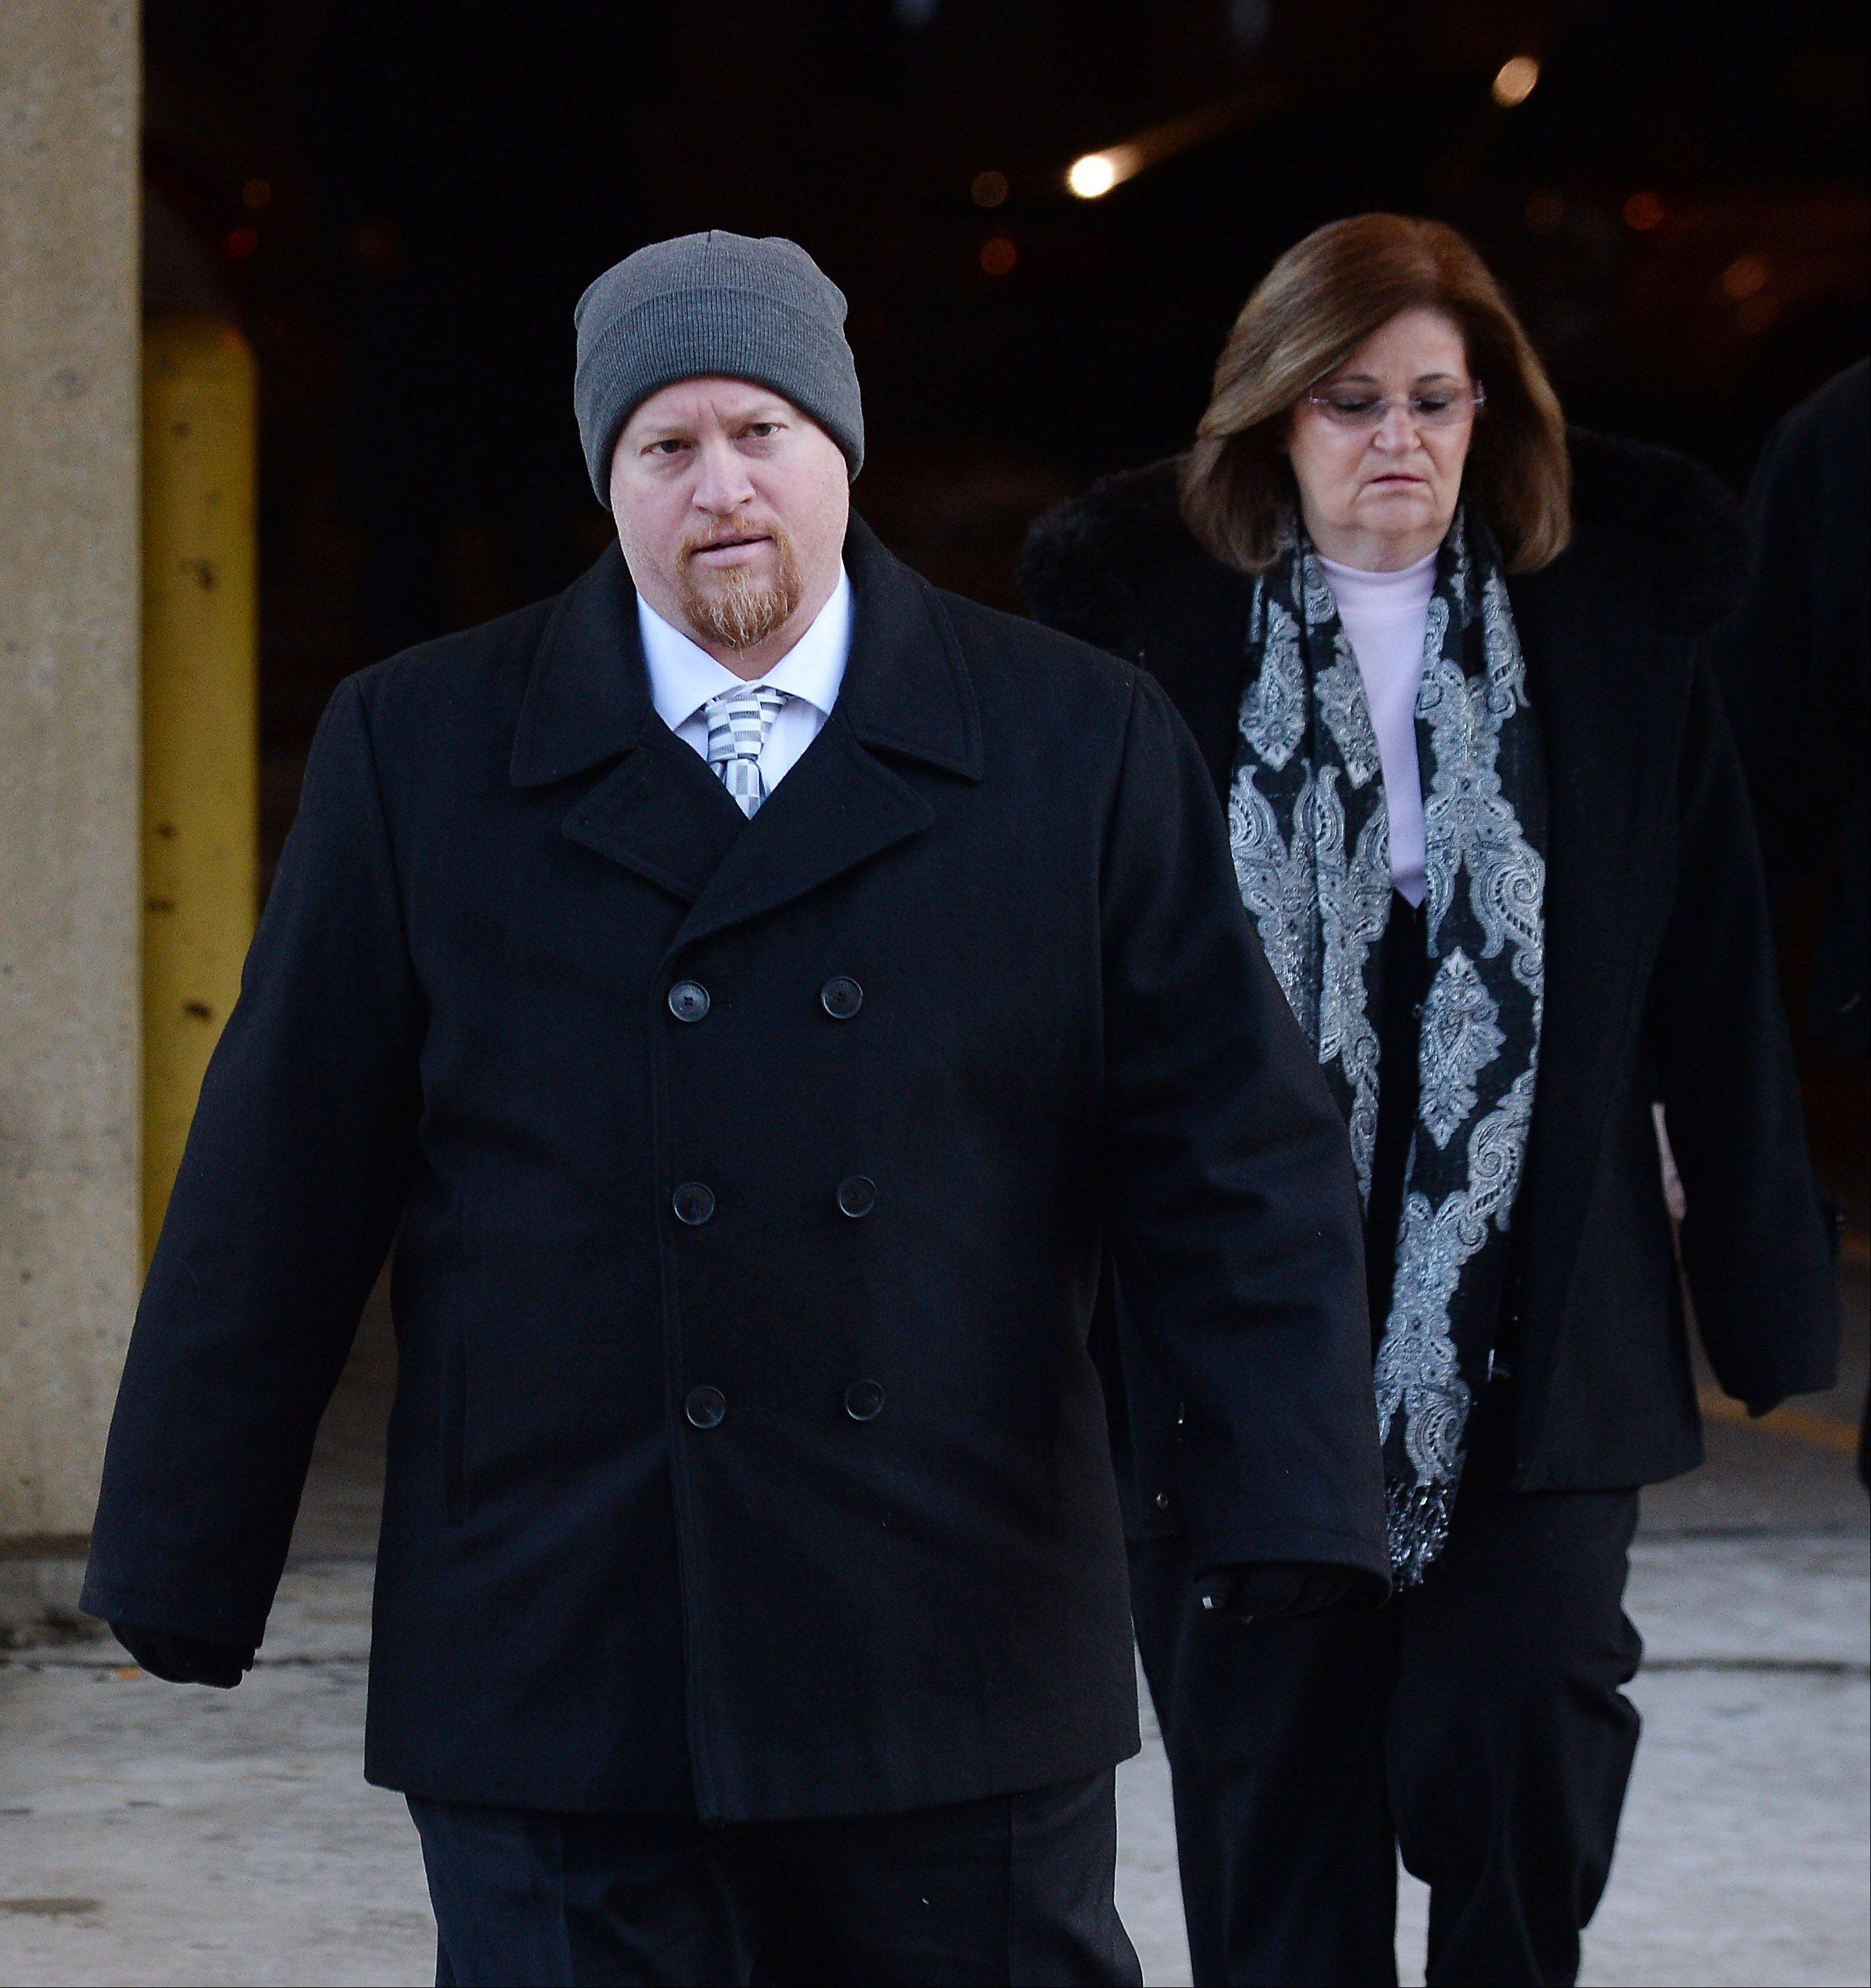 Former Maine West High School soccer coach Michael Divincenzo walks into the Cook County courthouse in Skokie Wednesday, where a judge ruled he is not guilty of hazing-related charges.